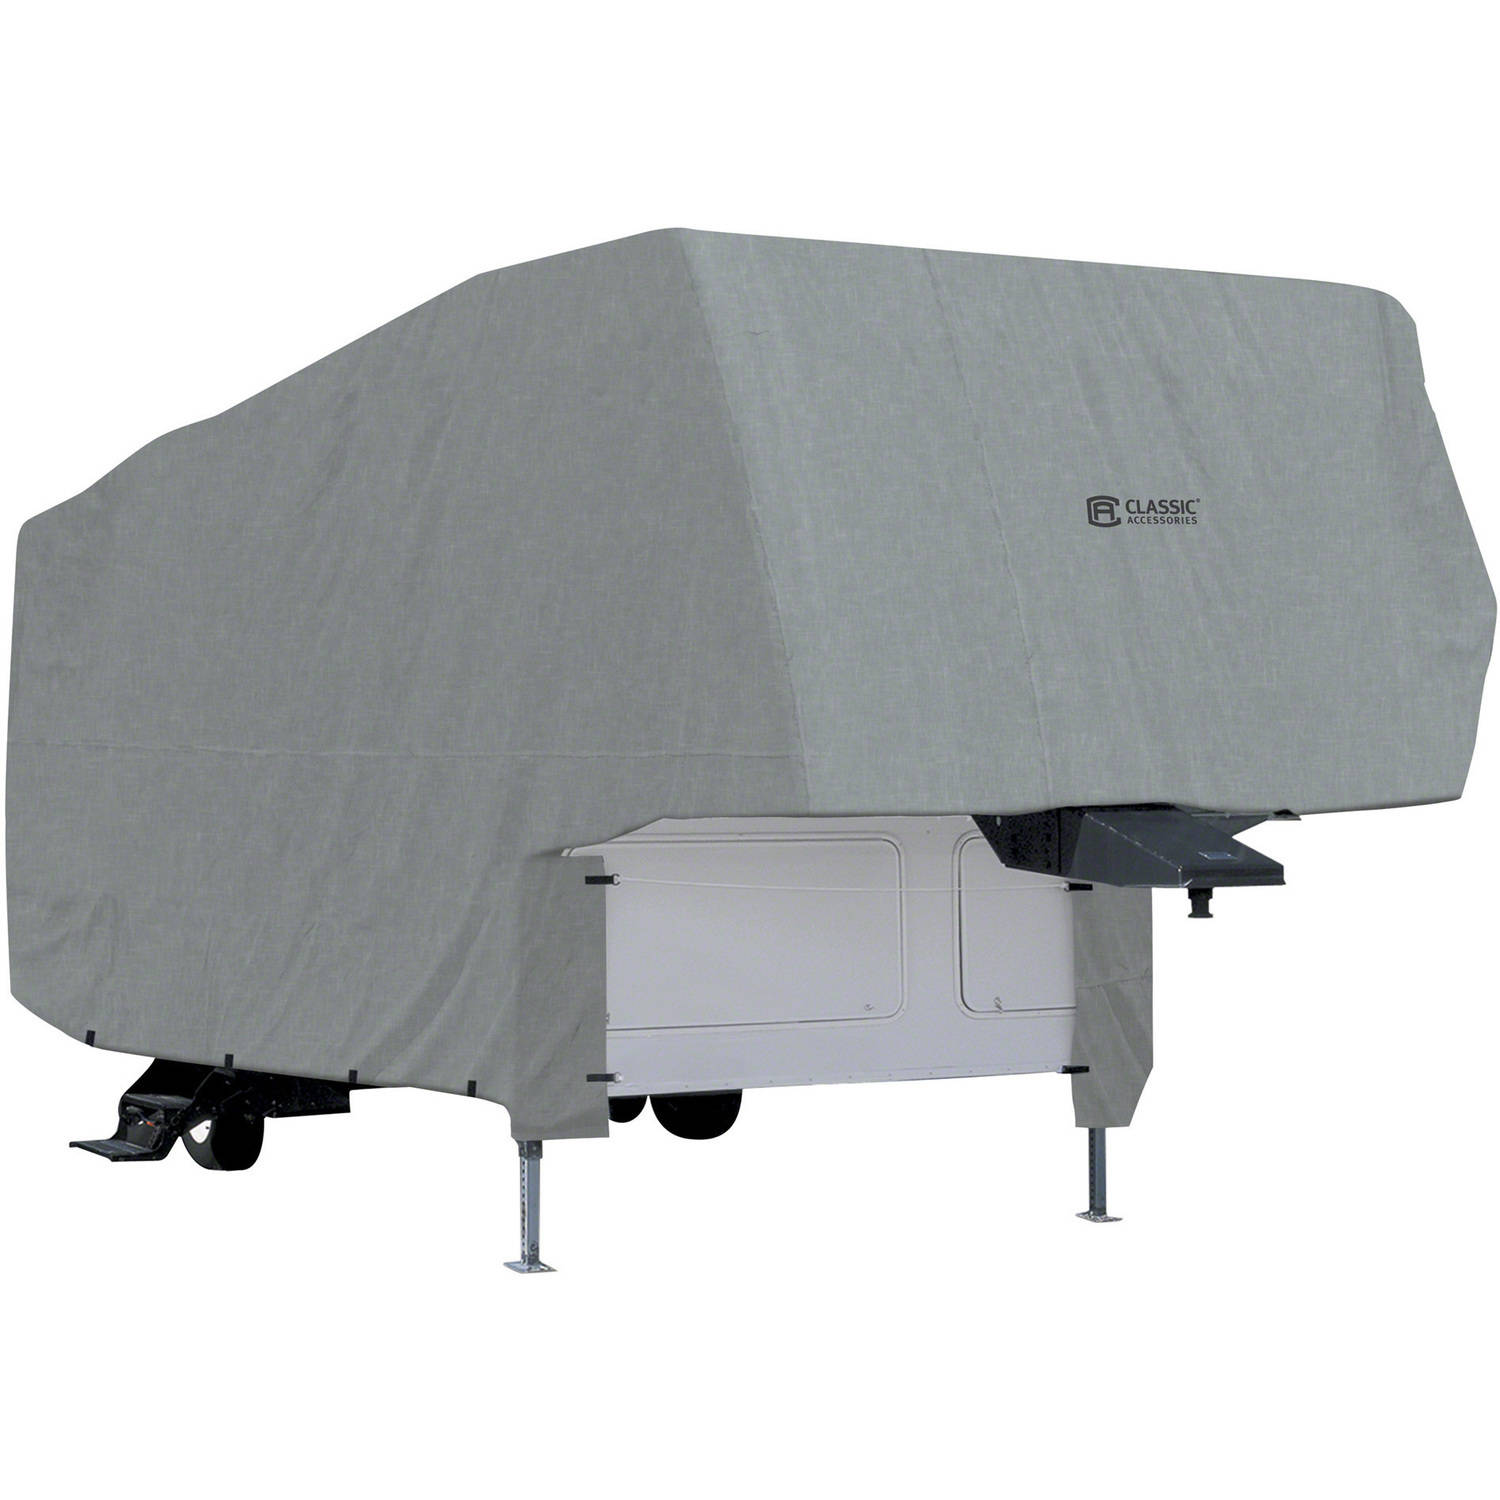 Classic Accessories OverDrive PolyPRO 1 5th Wheel Cover, Fits 20' - 41' RVs - Breathable and Water Repellant RV Cover